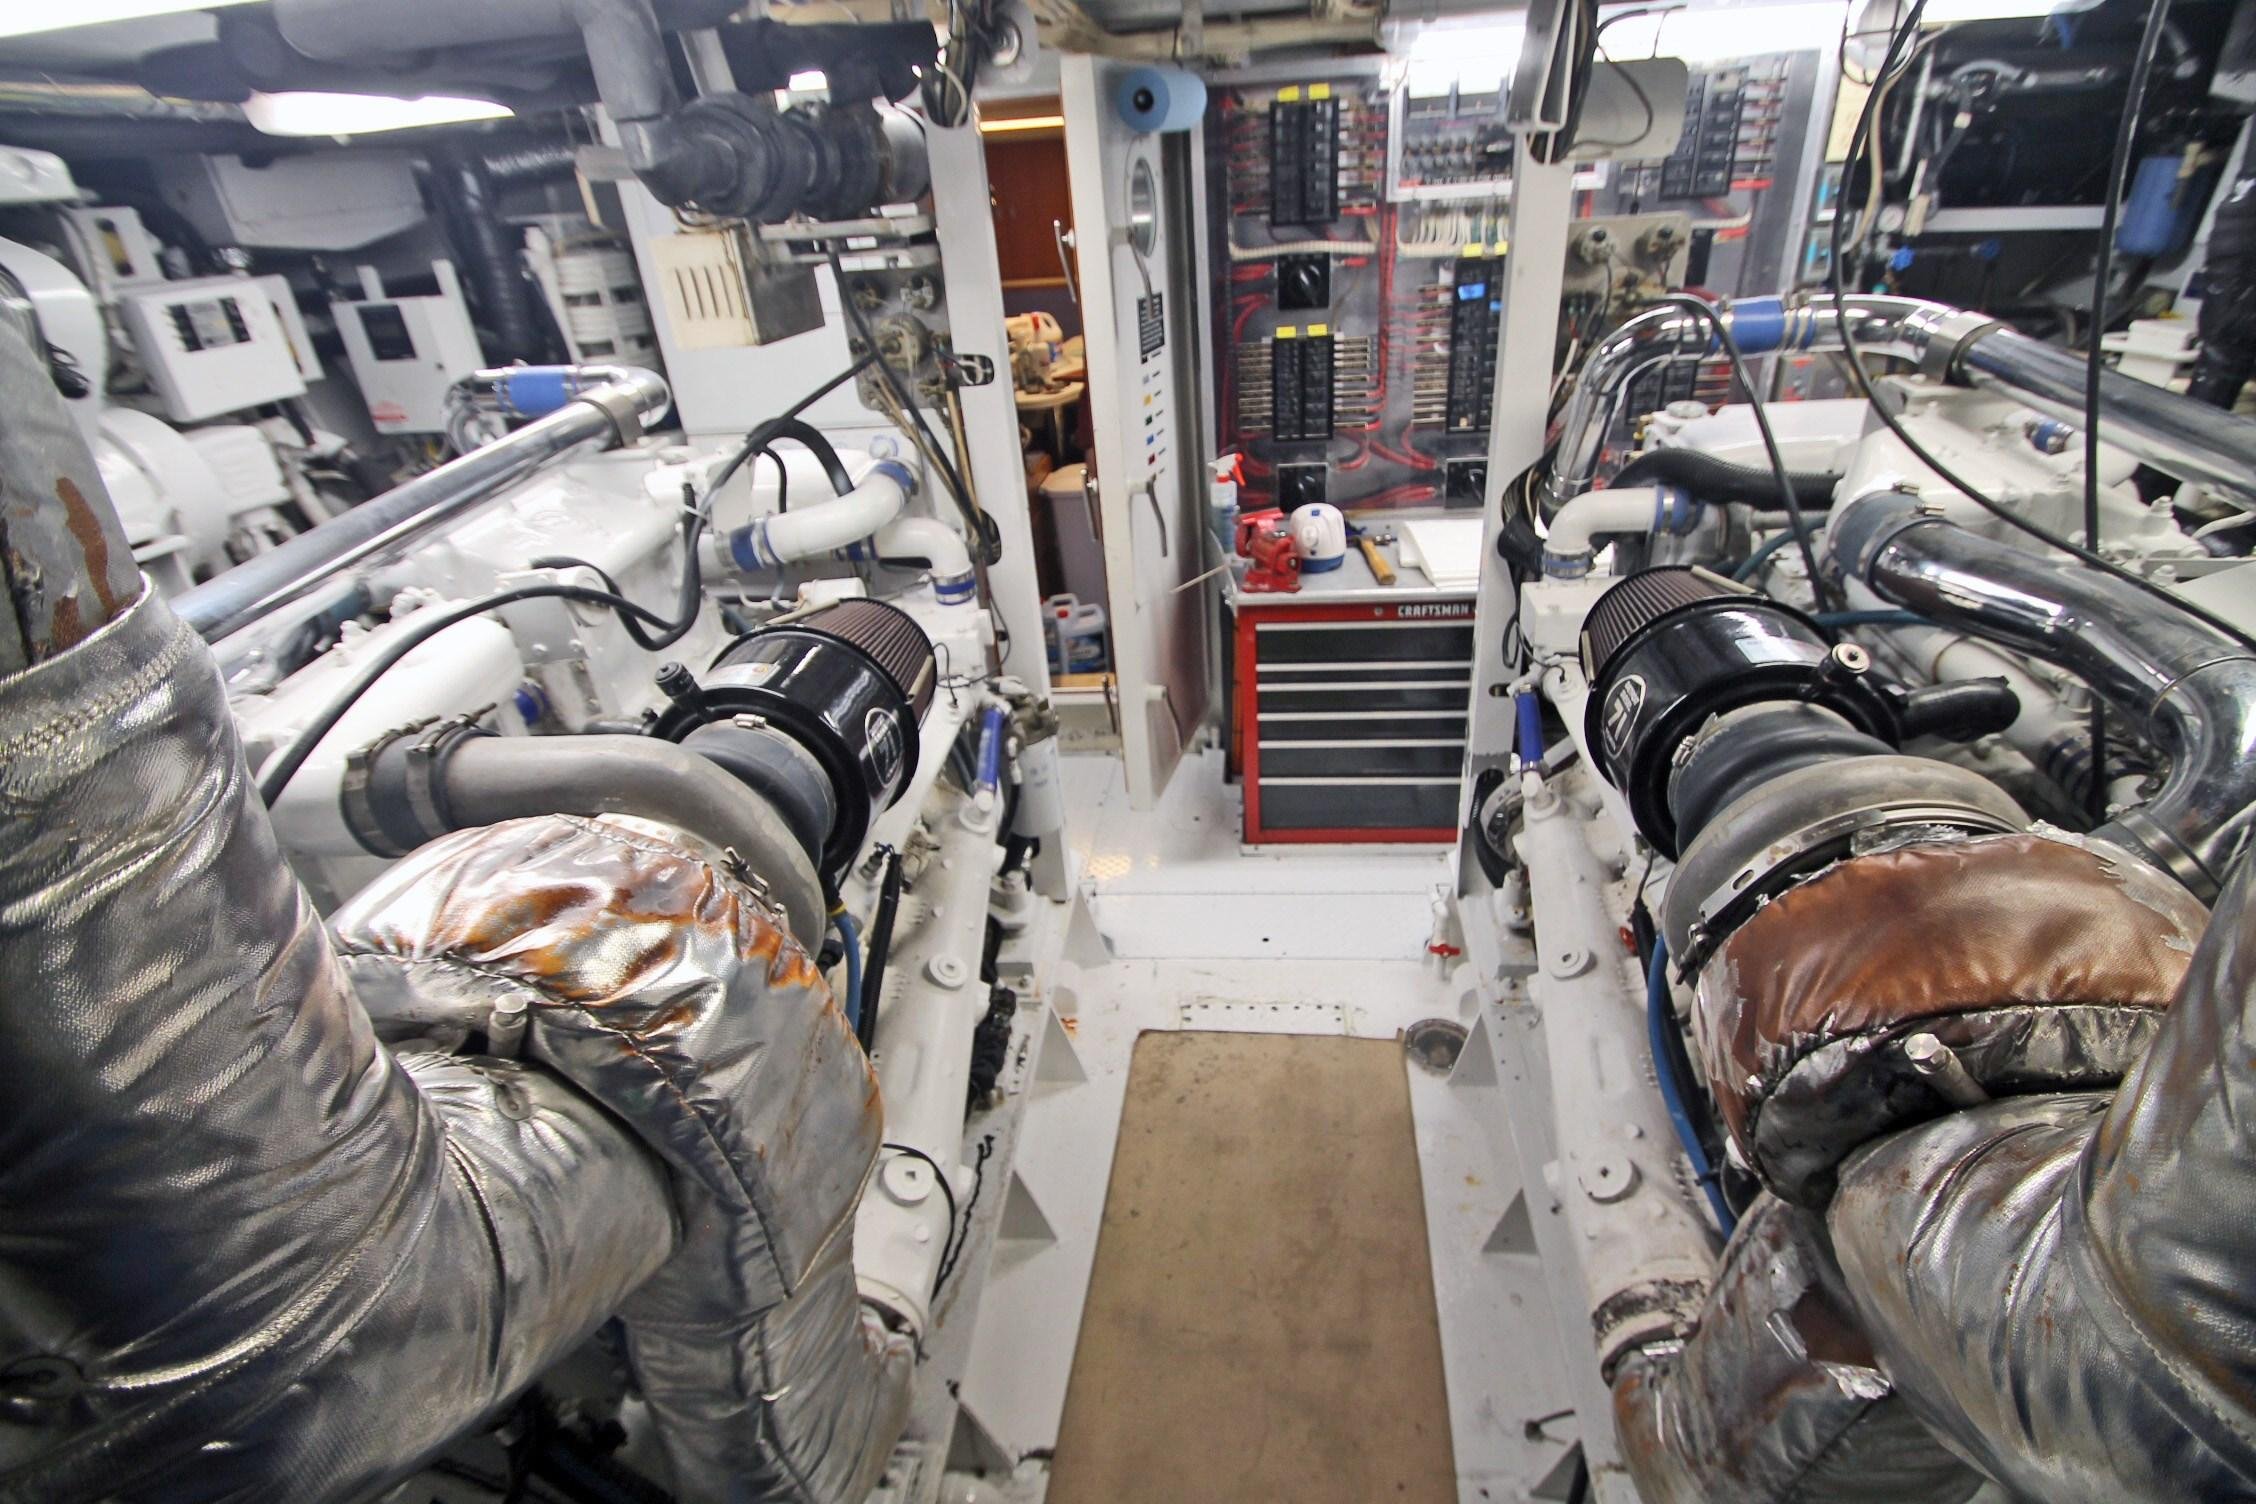 86 Burger Engine Room Looking FWD